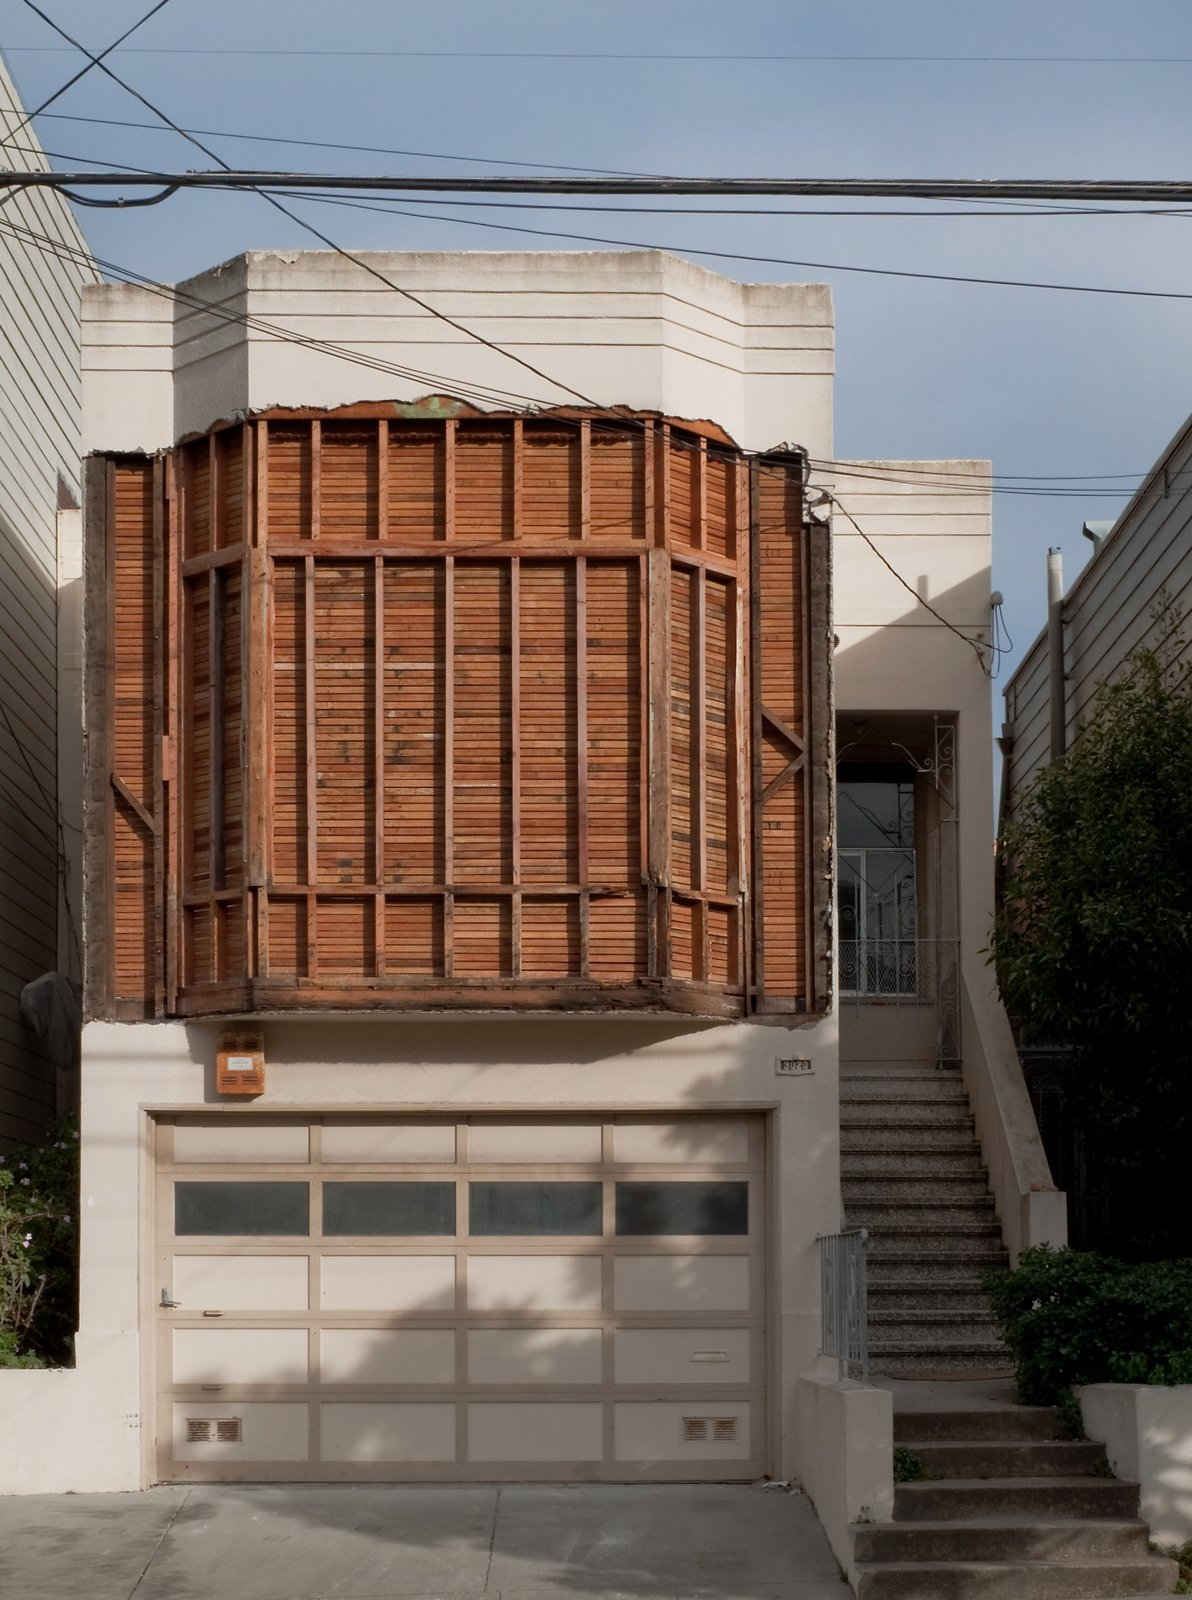 Highlight Gallery's temporary project is located at 3020 Laguna Street in San Francisco. The building's stripped-down facade offers an indication of the art and architectural hijinks inside.  Art from Architecture by Jaime Gillin